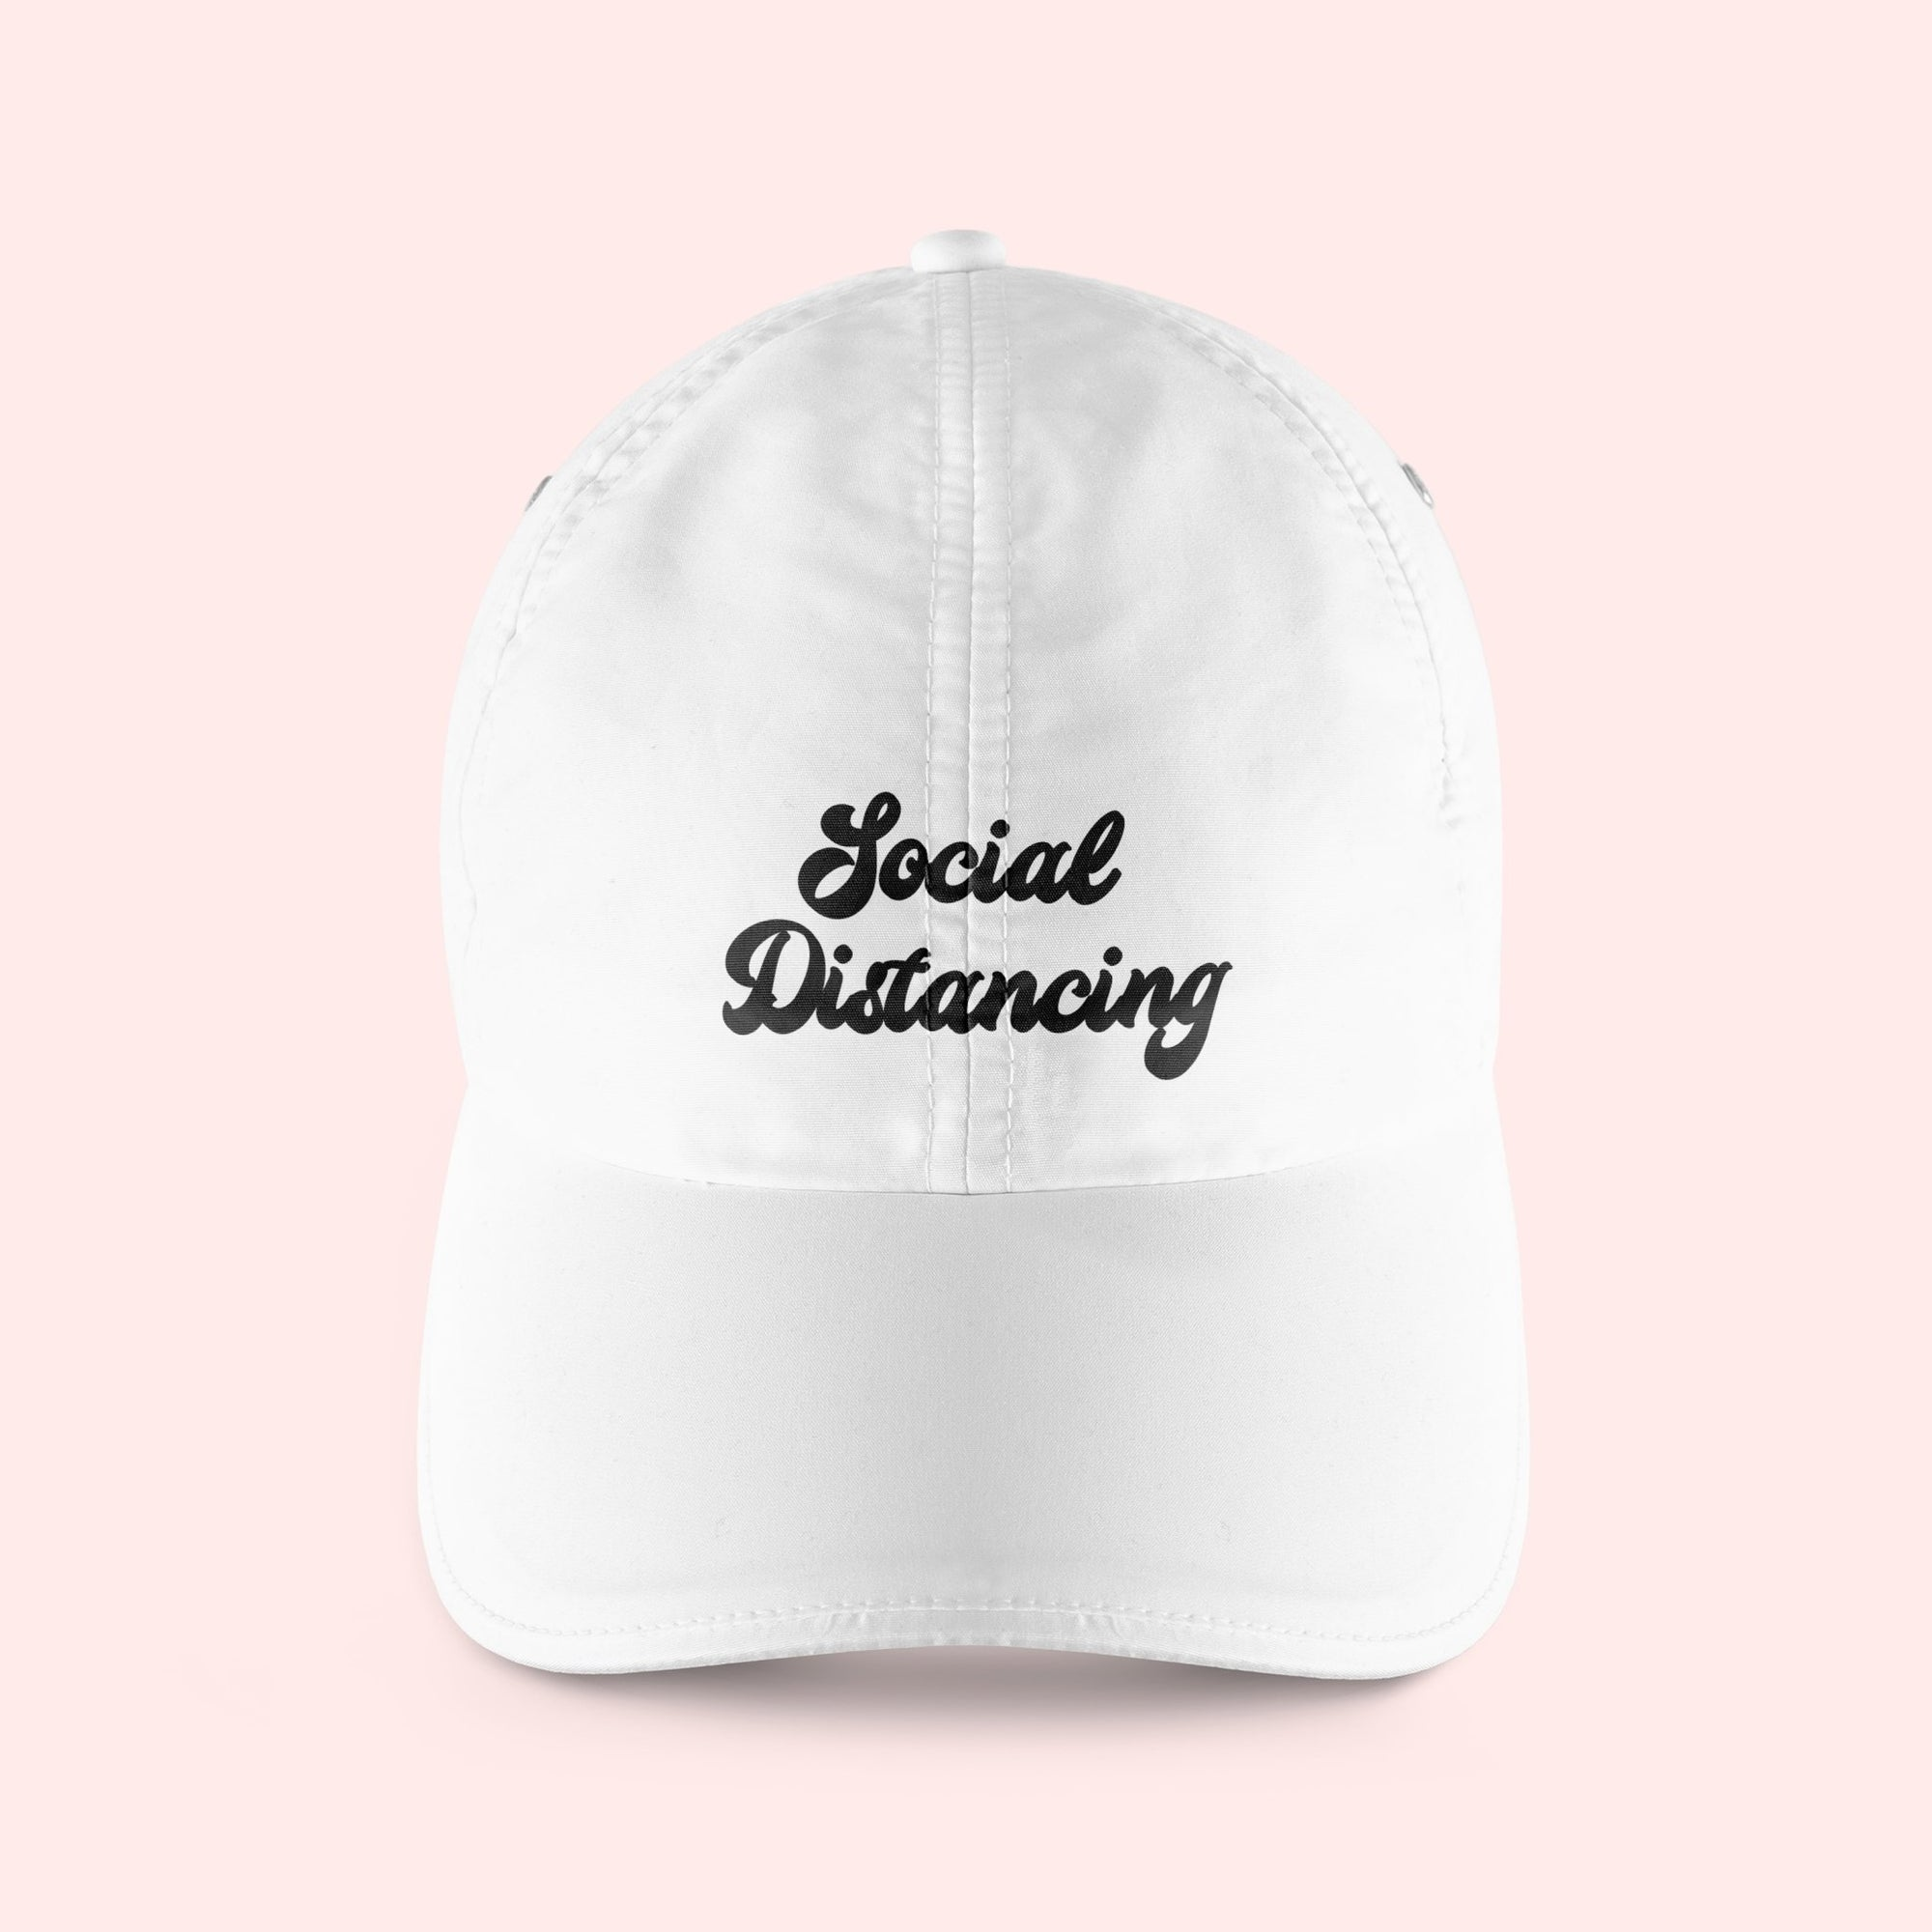 Social Distancing Baseball Hat